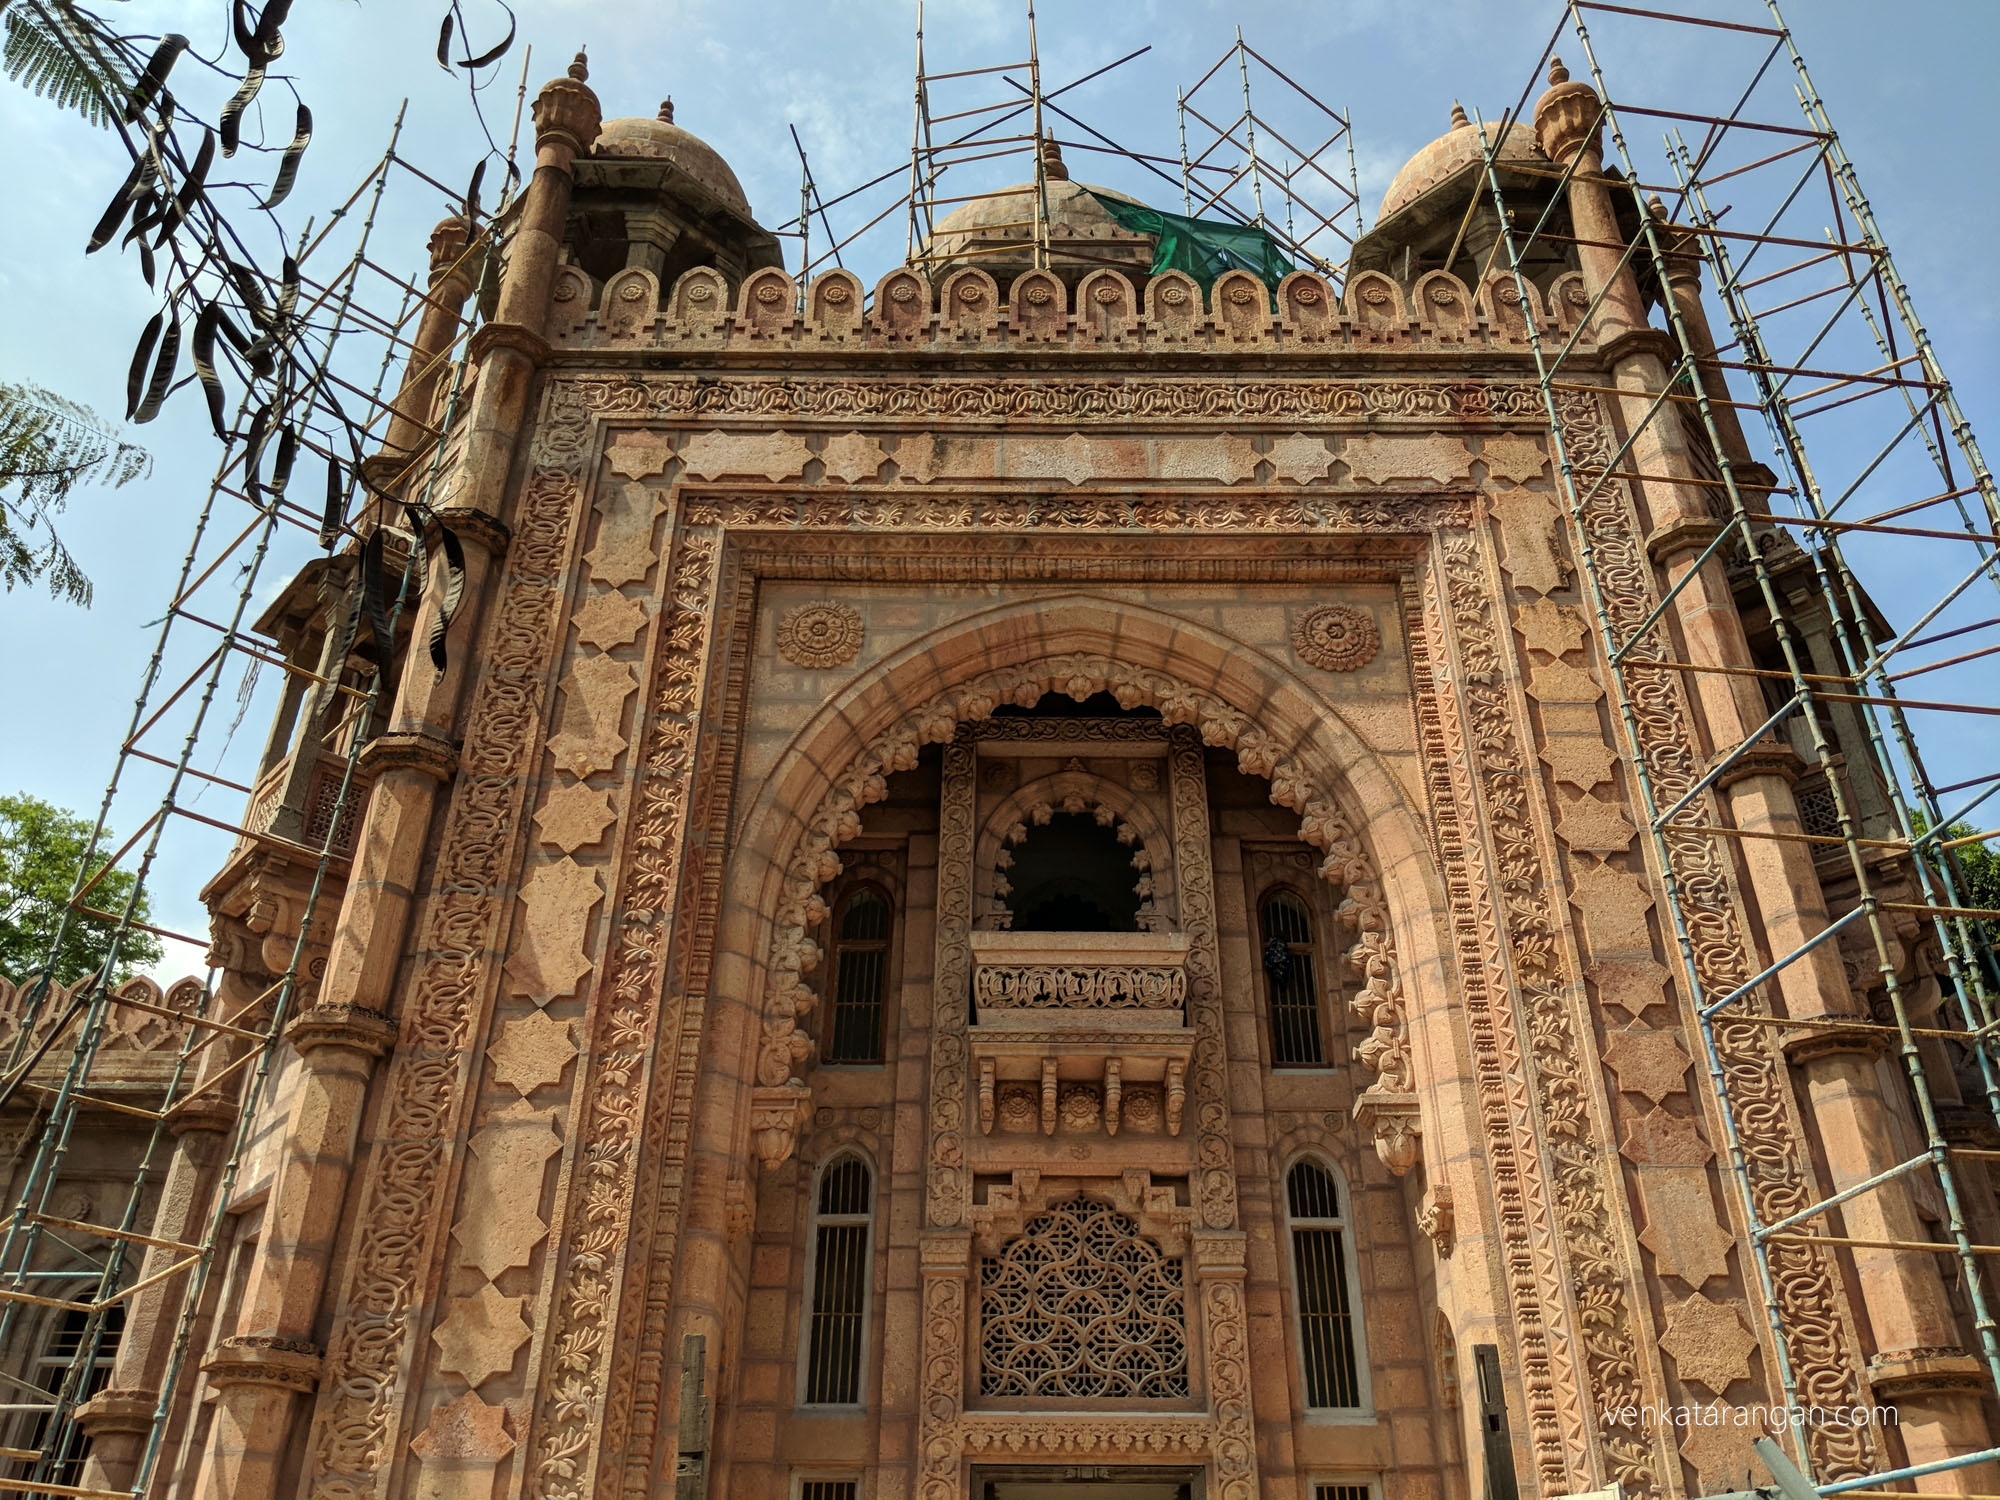 National Gallery, Egmore Museum being repaired after decades. The foundation stone was laid by the Prince of Wales in 1905